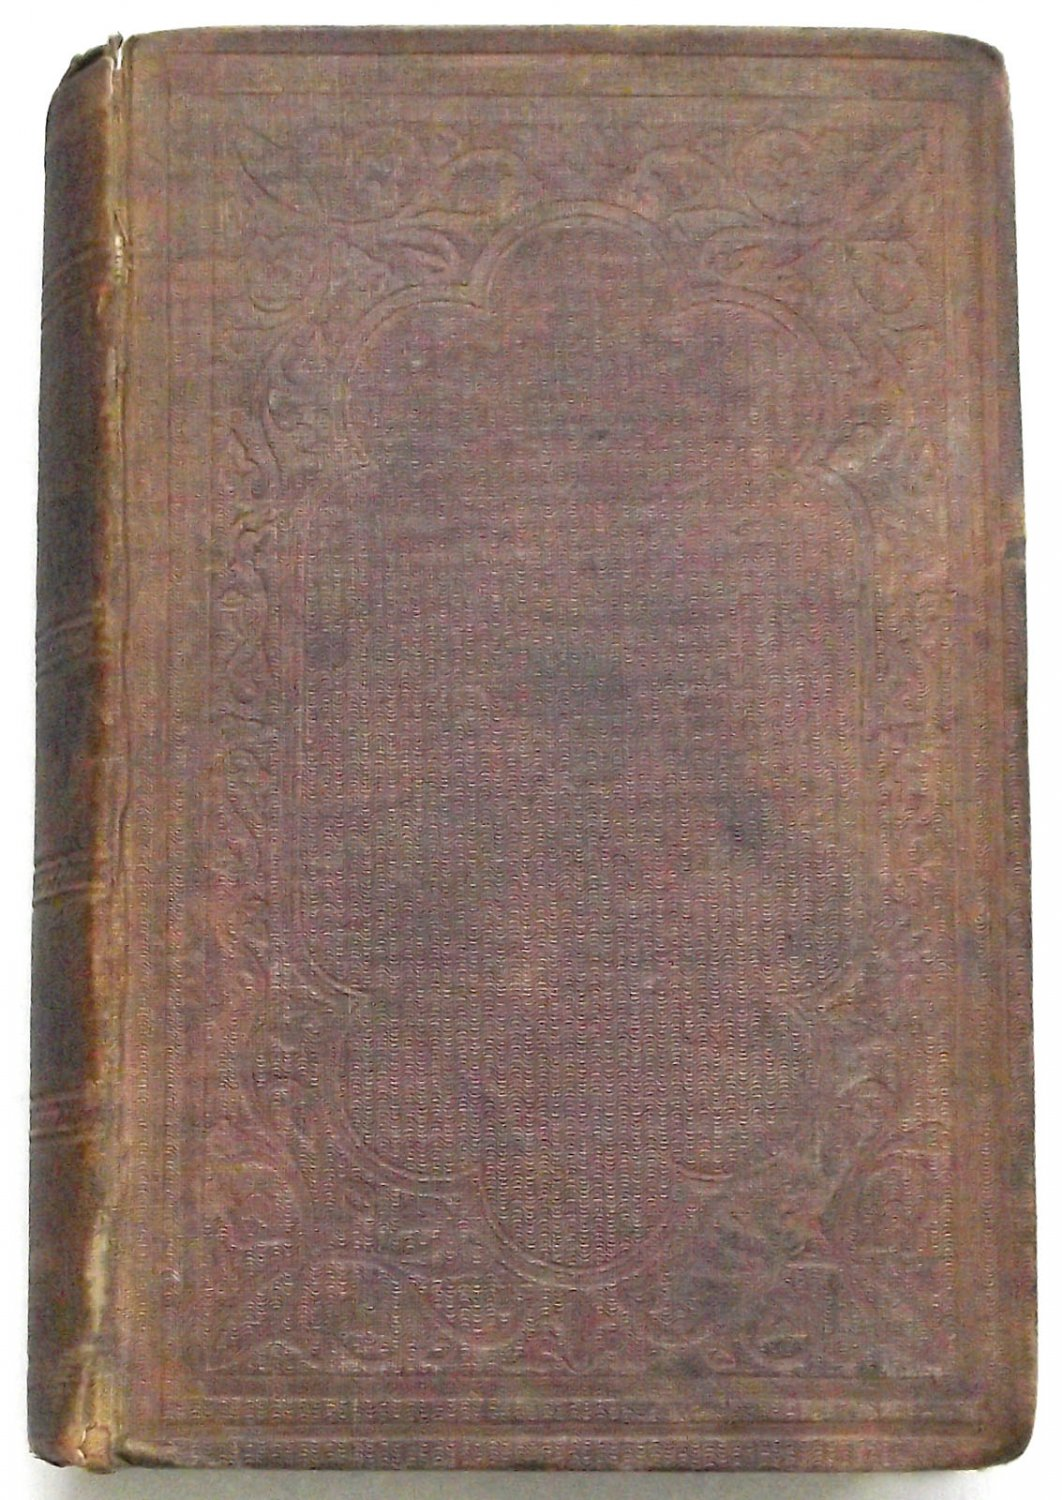 A Key To Uncle Tom's Cabin First Edition in Original Cloth 1853